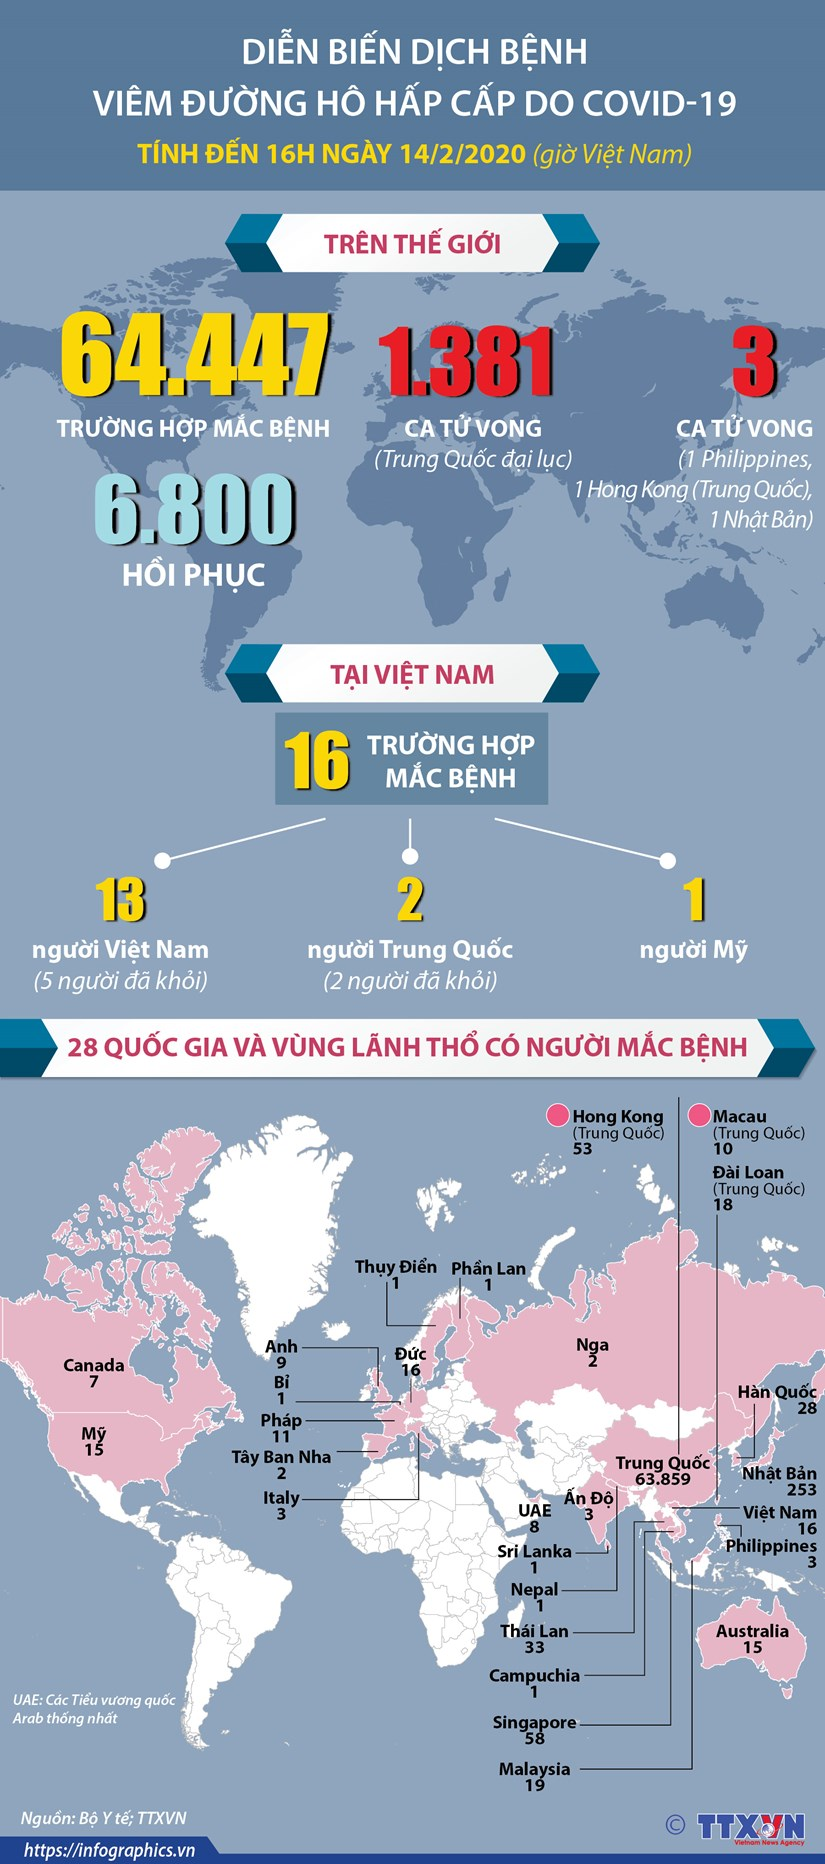 [Infographics] Dien bien dich benh COVID-19 den 16h ngay 14/2 hinh anh 1